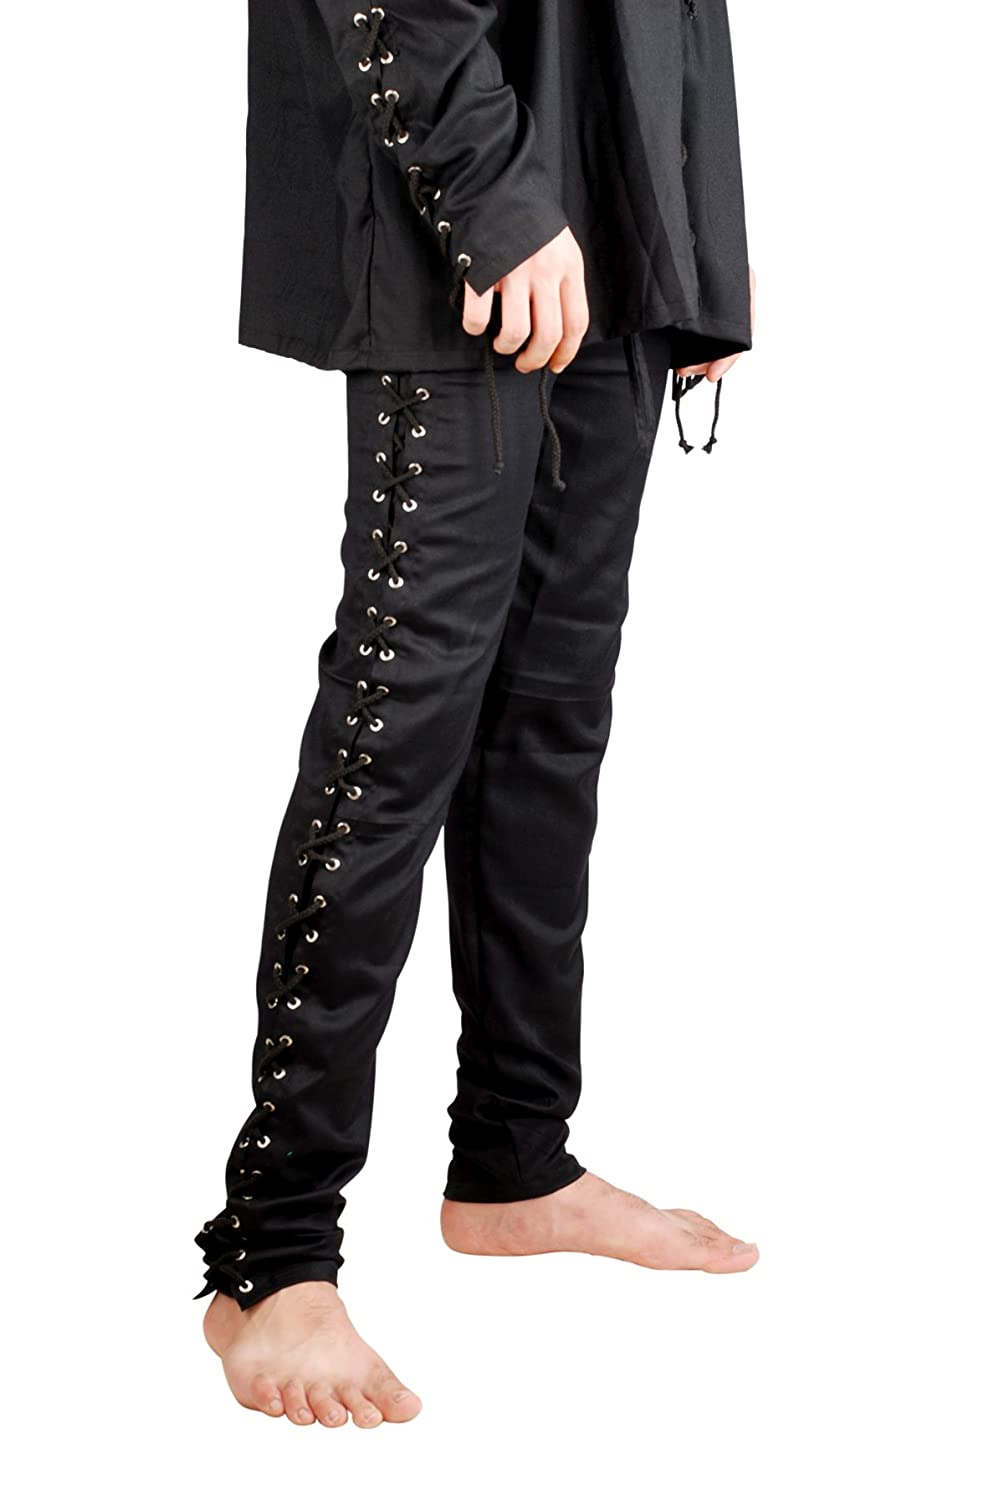 Gothic Death Pants - Renaissance Costume